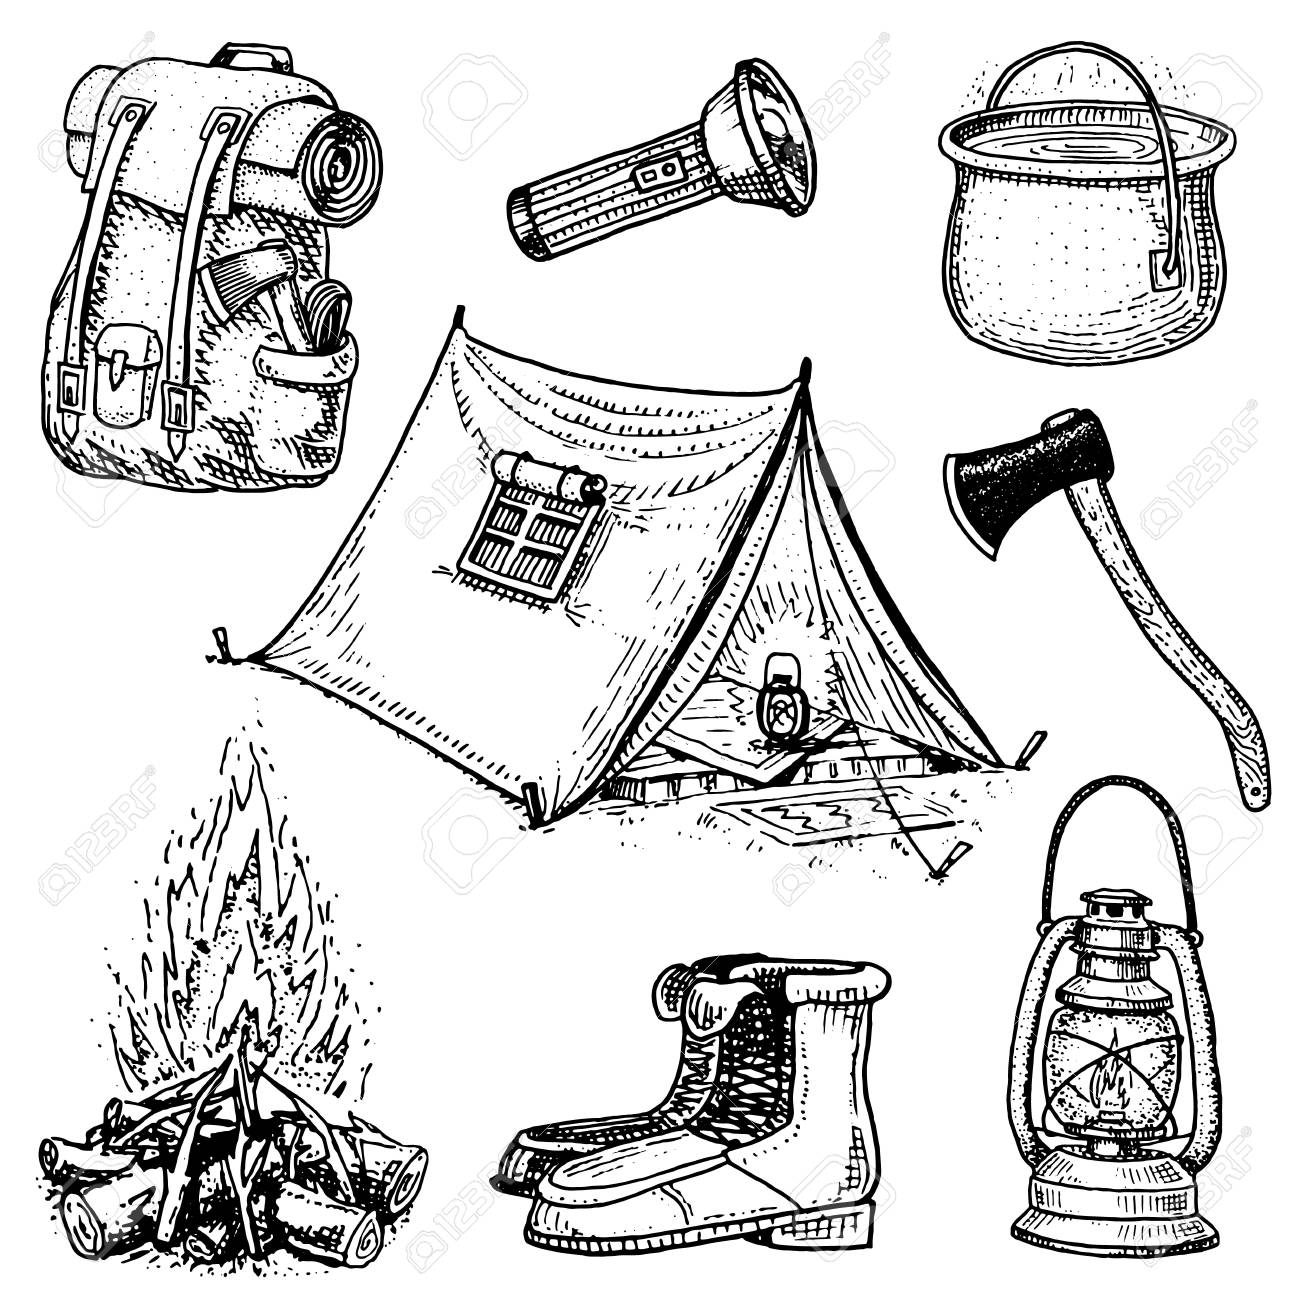 Camping Trip Outdoor Adventure Hiking Set Of Tourism Equipment Engraved Hand Drawn